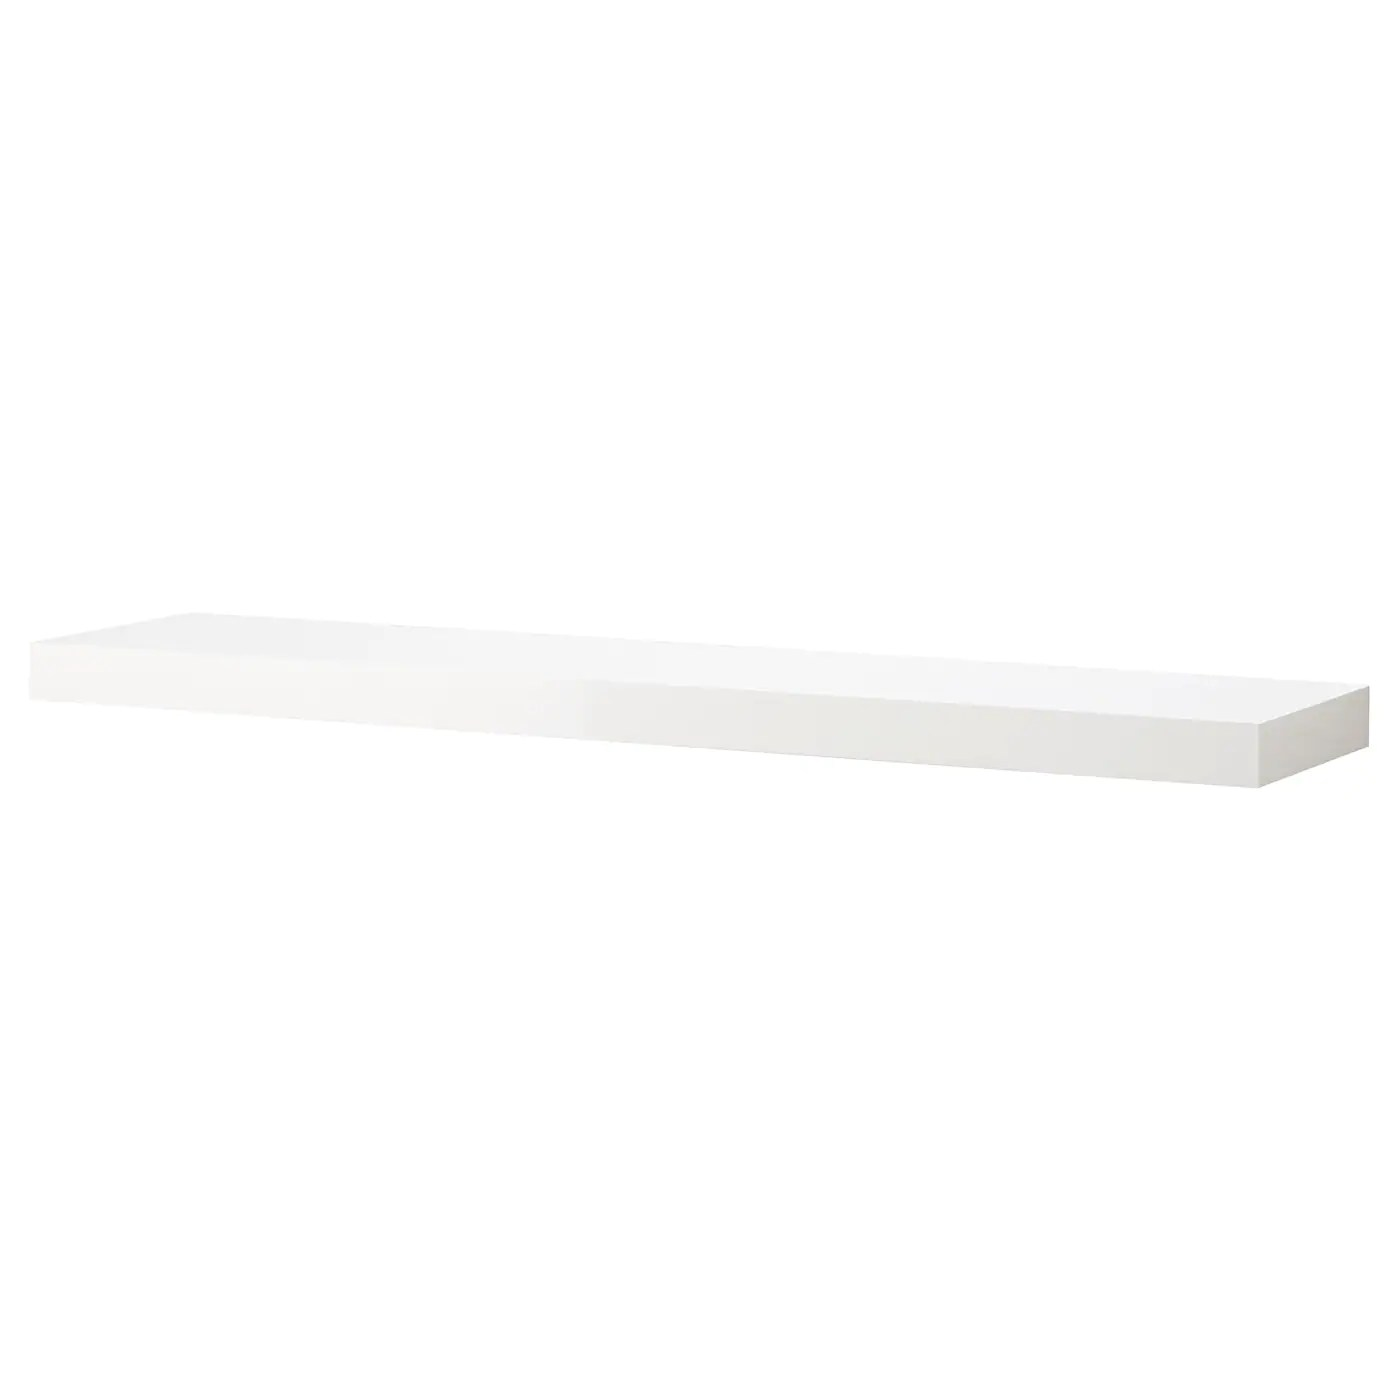 Wandregal Weiß Hochglanz Ikea Lack Wall Shelf White High Gloss 110 X 26 Cm Ikea